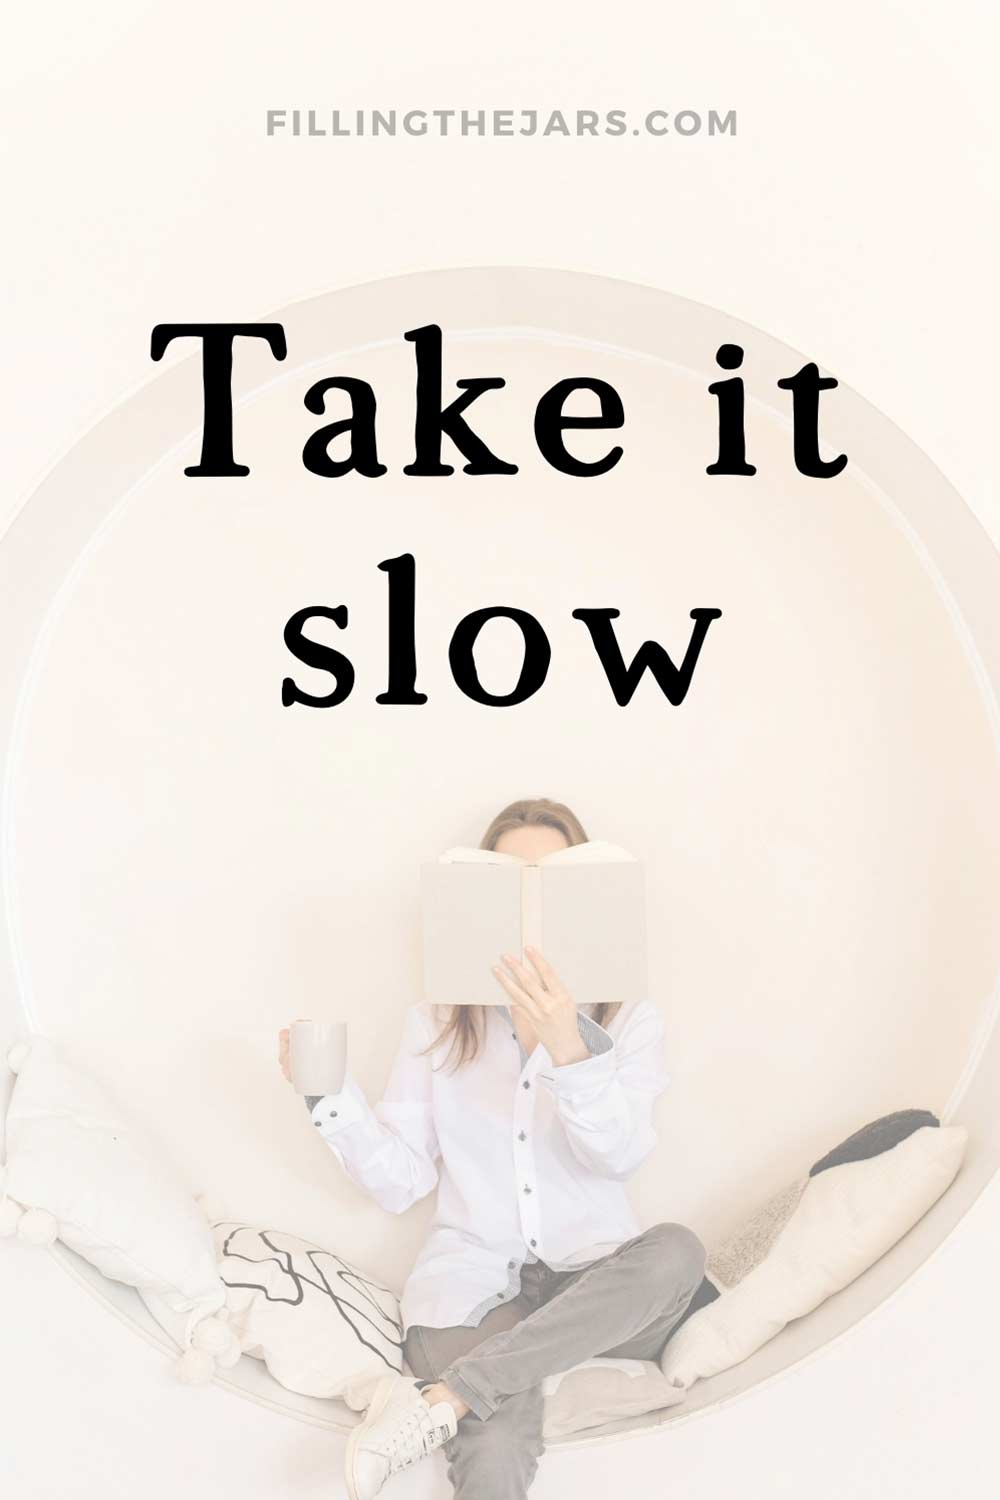 Take it slow quote text over image of woman sitting in circular seat while holding coffee mug and reading.